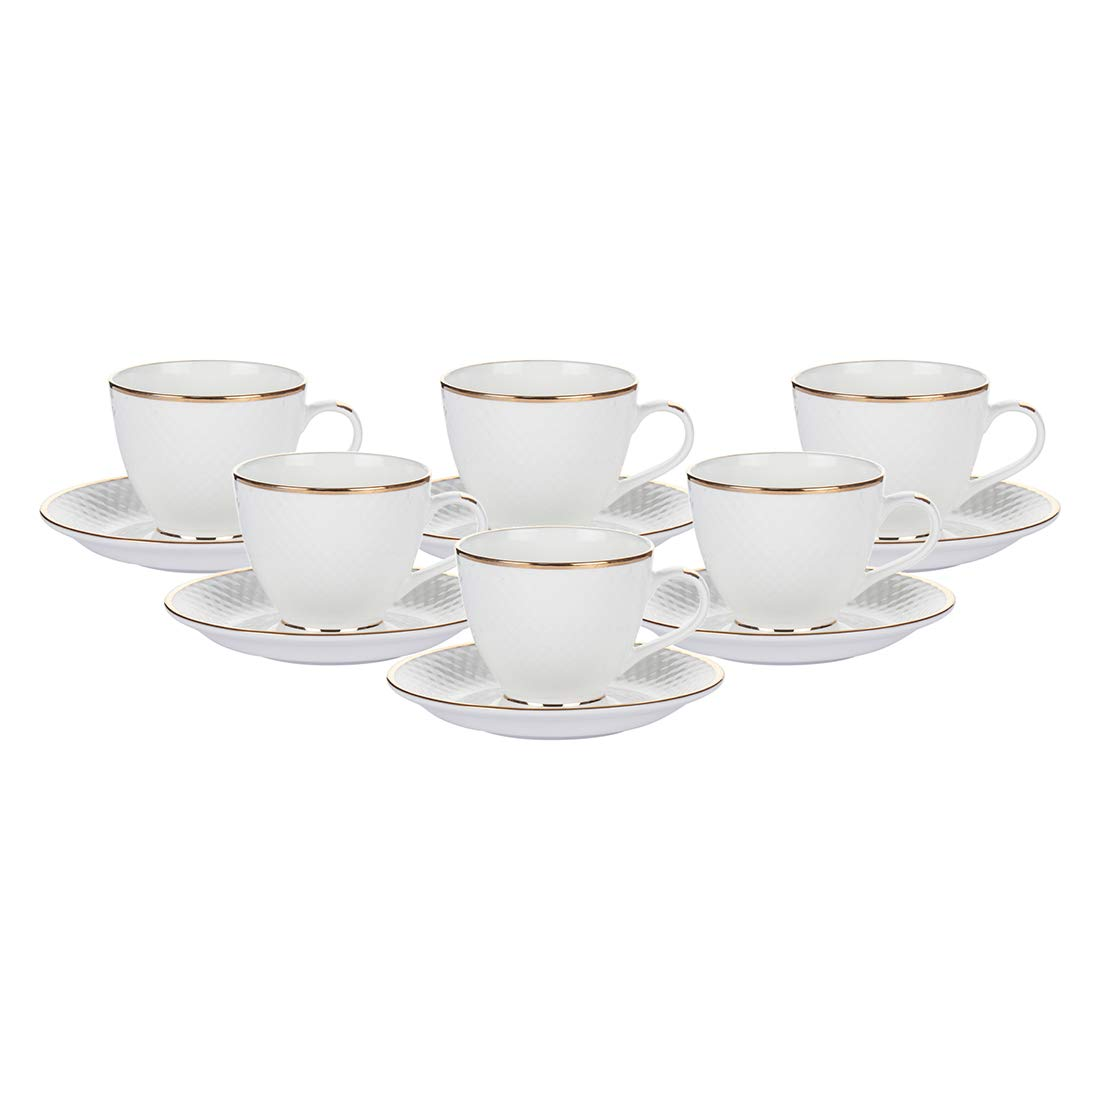 Indian Ceramic Gold Line Diamond Cut White Cups & Saucer- 190 ML